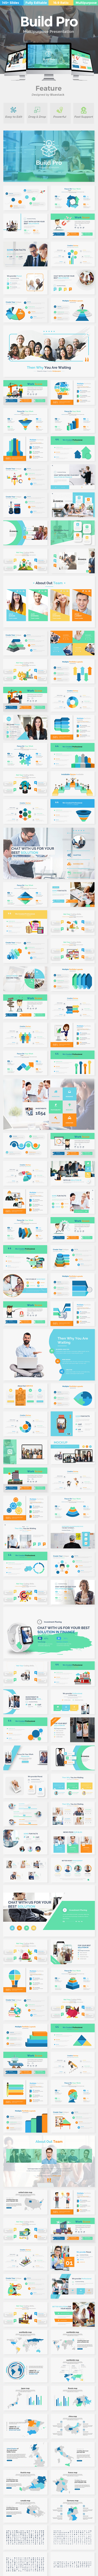 Build Pro Business Powerpoint Template - Business PowerPoint Templates